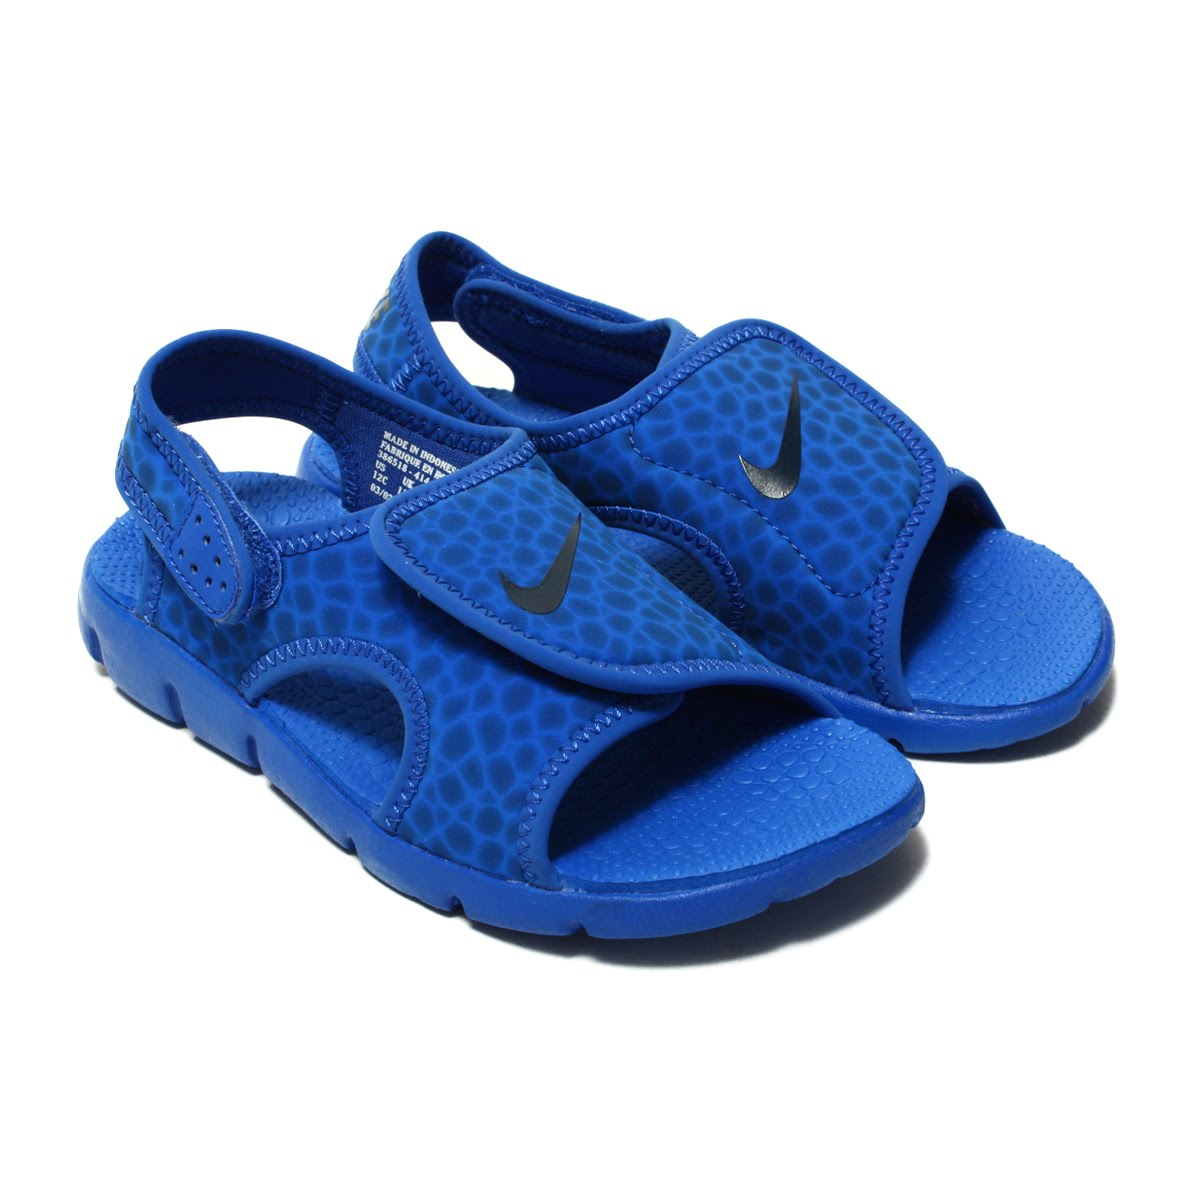 f5d375b7da0c NIKE SUNRAY ADJUST 4 (GS PS) (Nike sun lei adjust 4 GS PS) GAME  ROYAL OBSIDIAN-GAME ROYAL 18SS-I